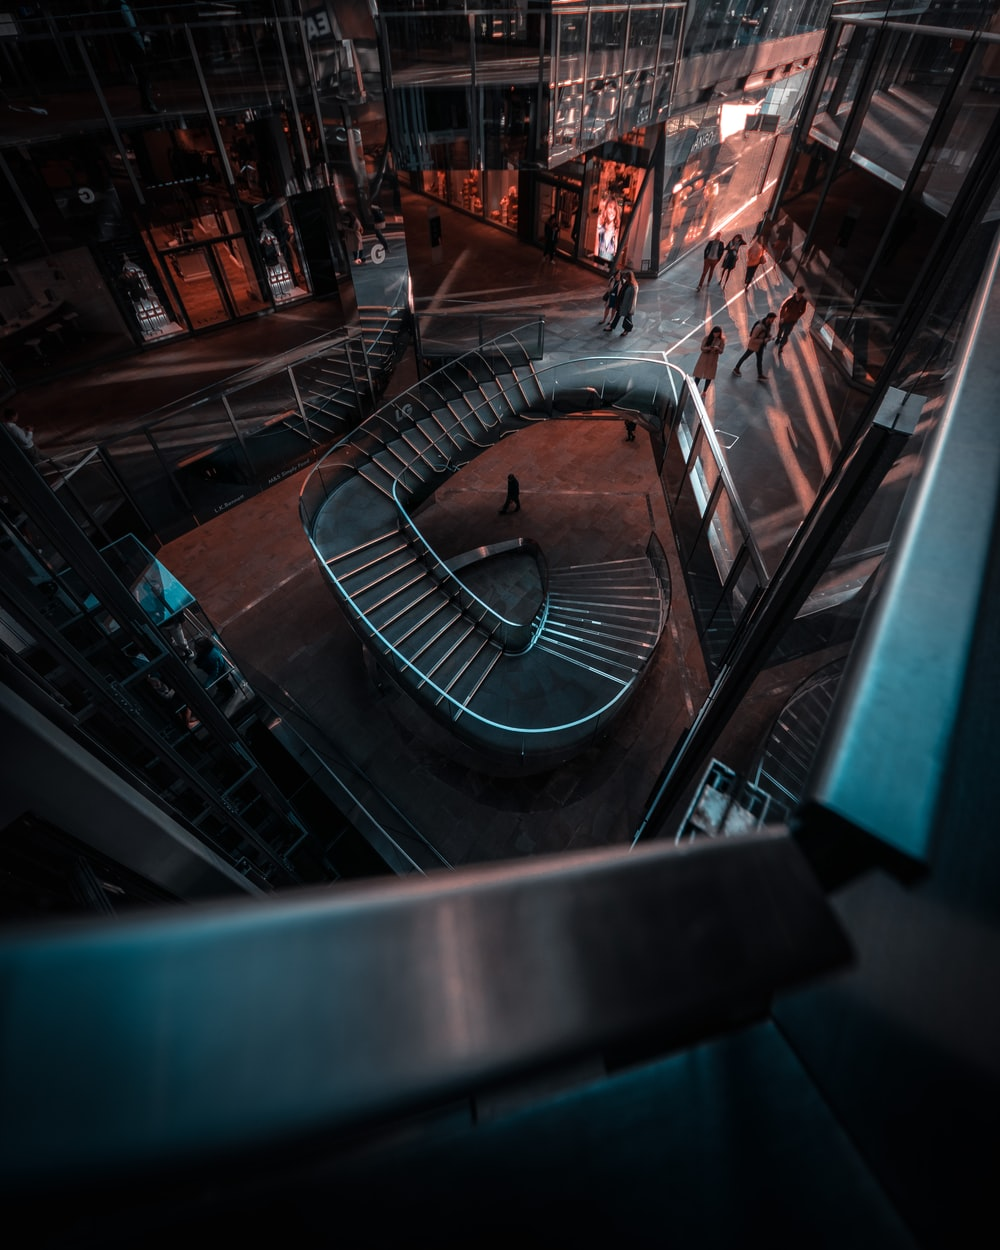 spircal stairs at night time